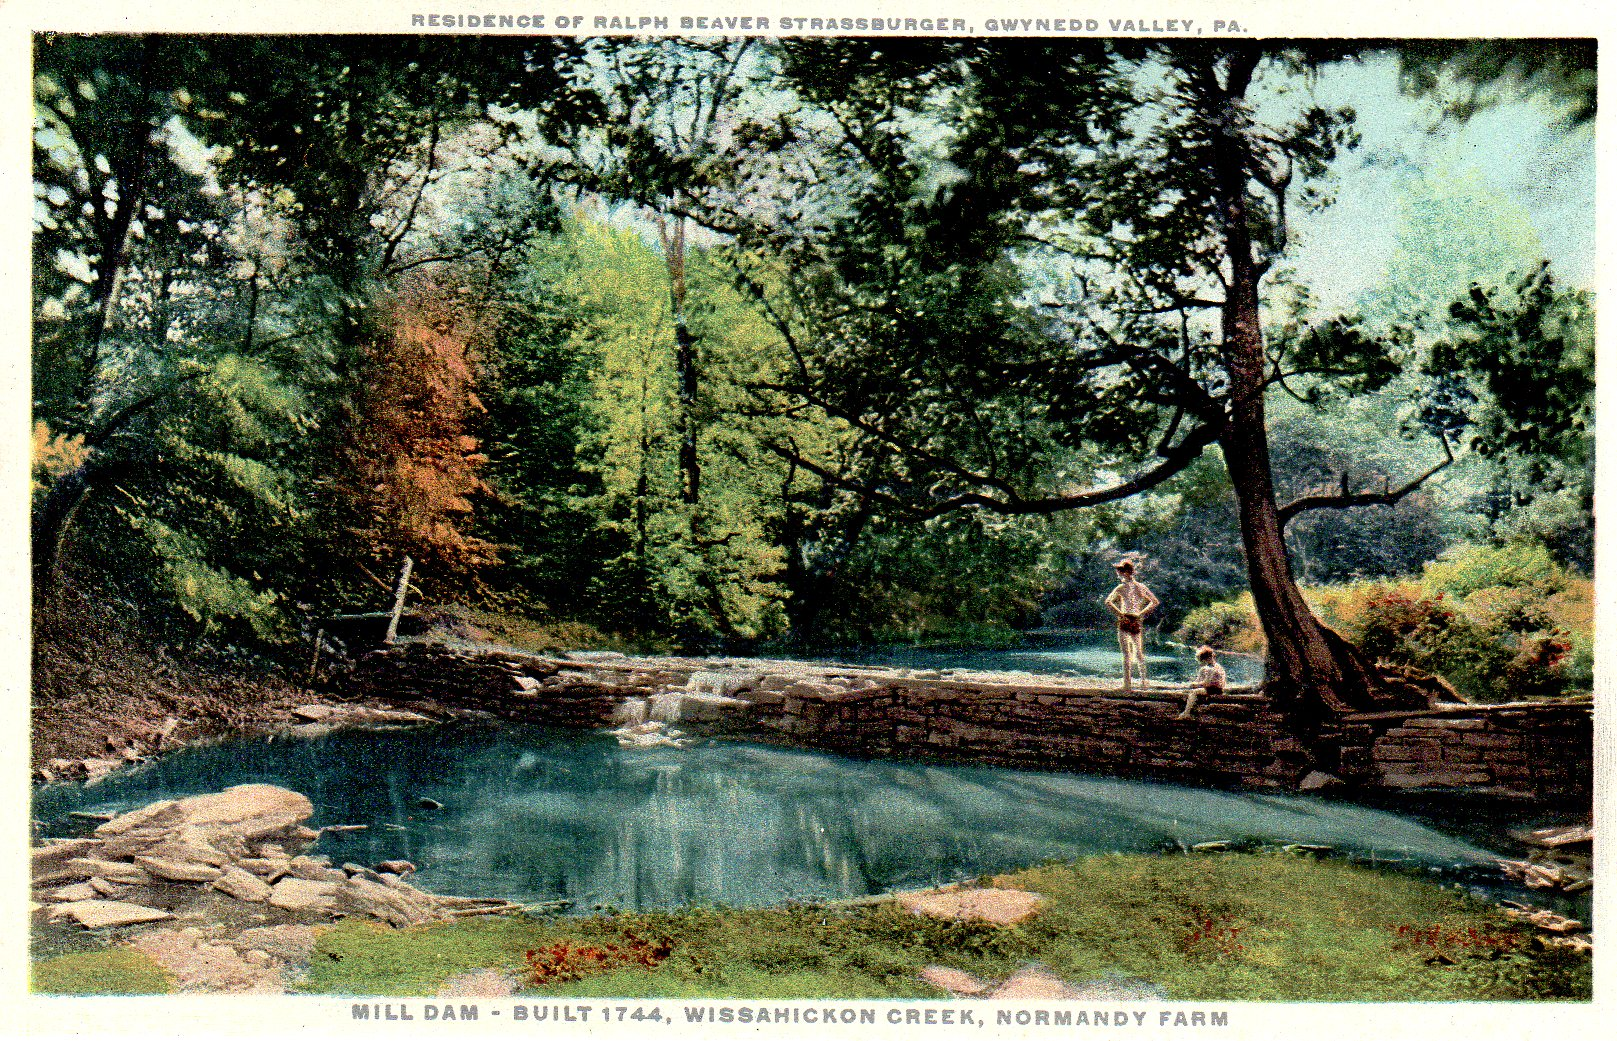 Post Card Collection (E Simon)_2682_80_Home Ralph Beaver Strassburger_Mill Dam (Built 1744) Wissahickon Creek, Normandy Farm